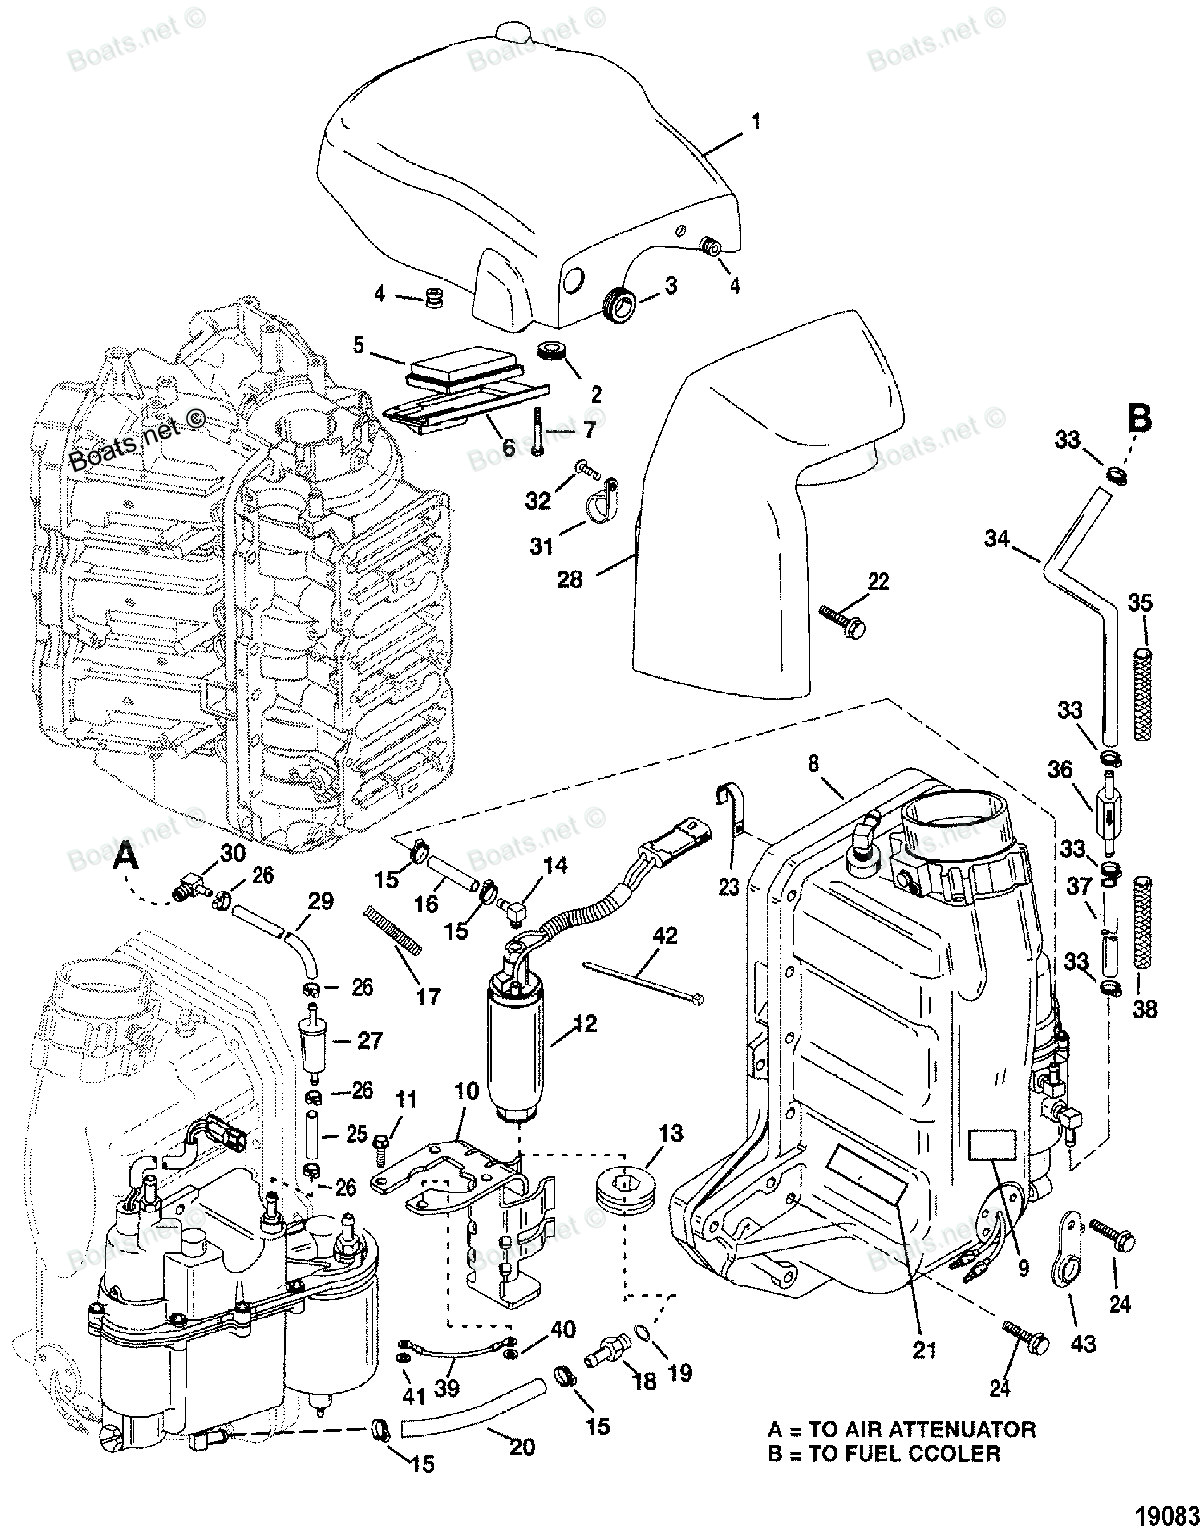 Wiring Diagram: 35 Optimax Fuel System Diagram